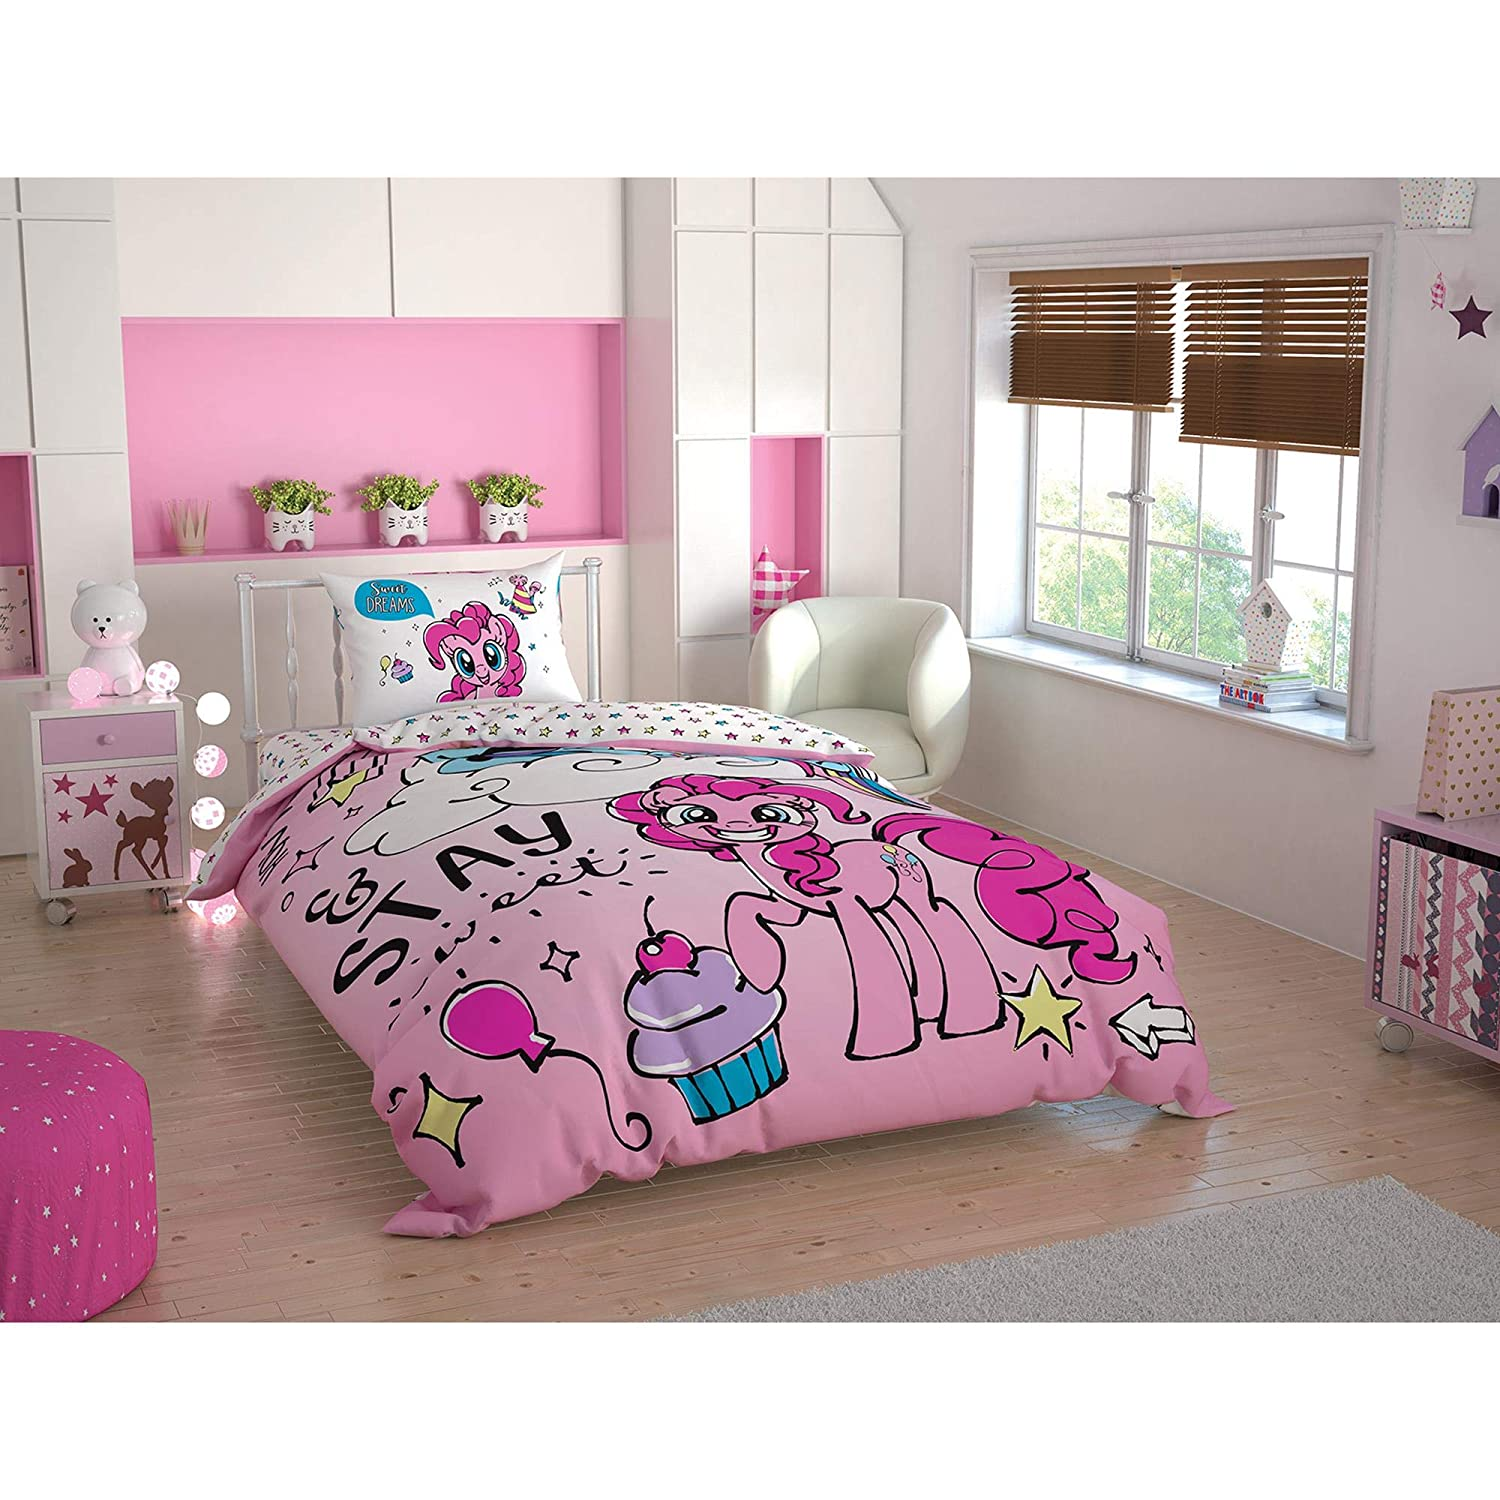 My Little Pony Sweet Dreams %100 Cotton Bedding Set Licenced Product Quilt Cover Set Duvet Cover Pillow Case Fitted Sheet